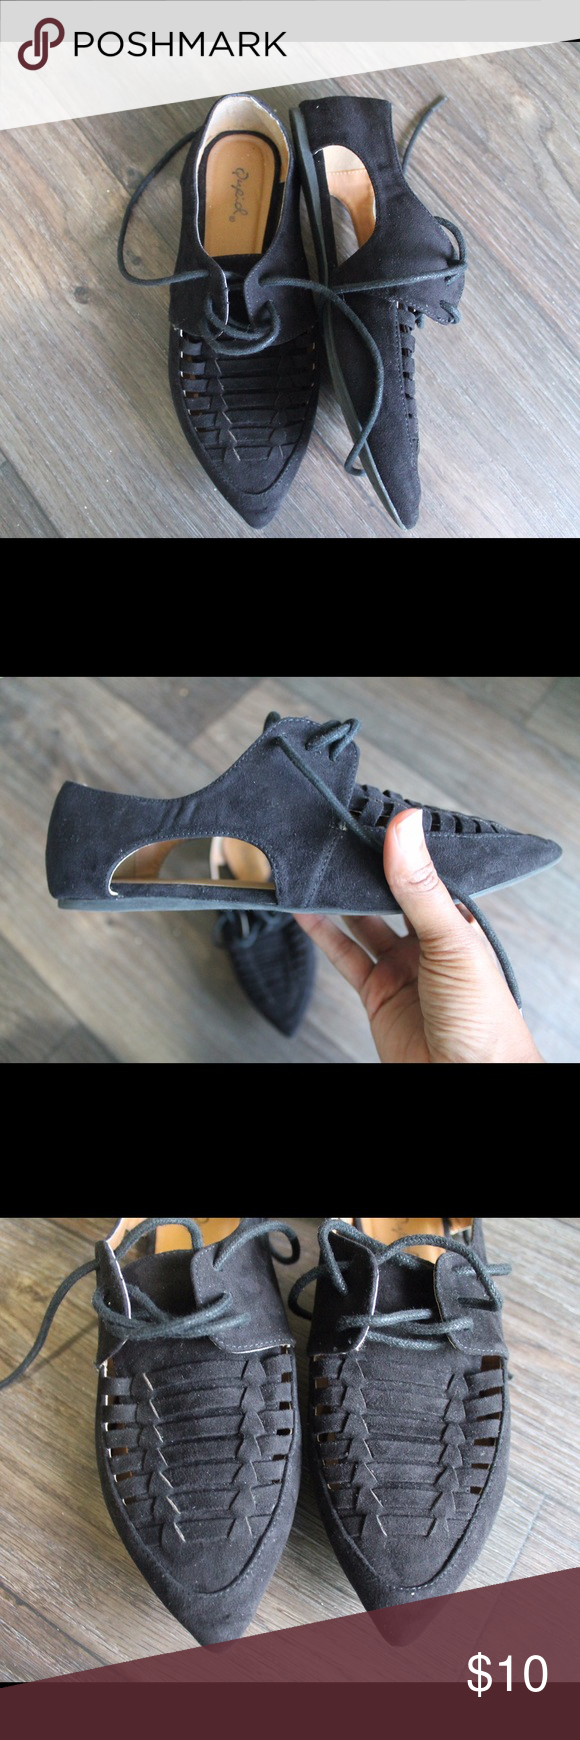 Cut out flats Tomboy cut out lace up flats. Super cute cute details on the sides. Wear them with dress pants, some jeans or with a dress. Only worn once. Shoes Flats & Loafers